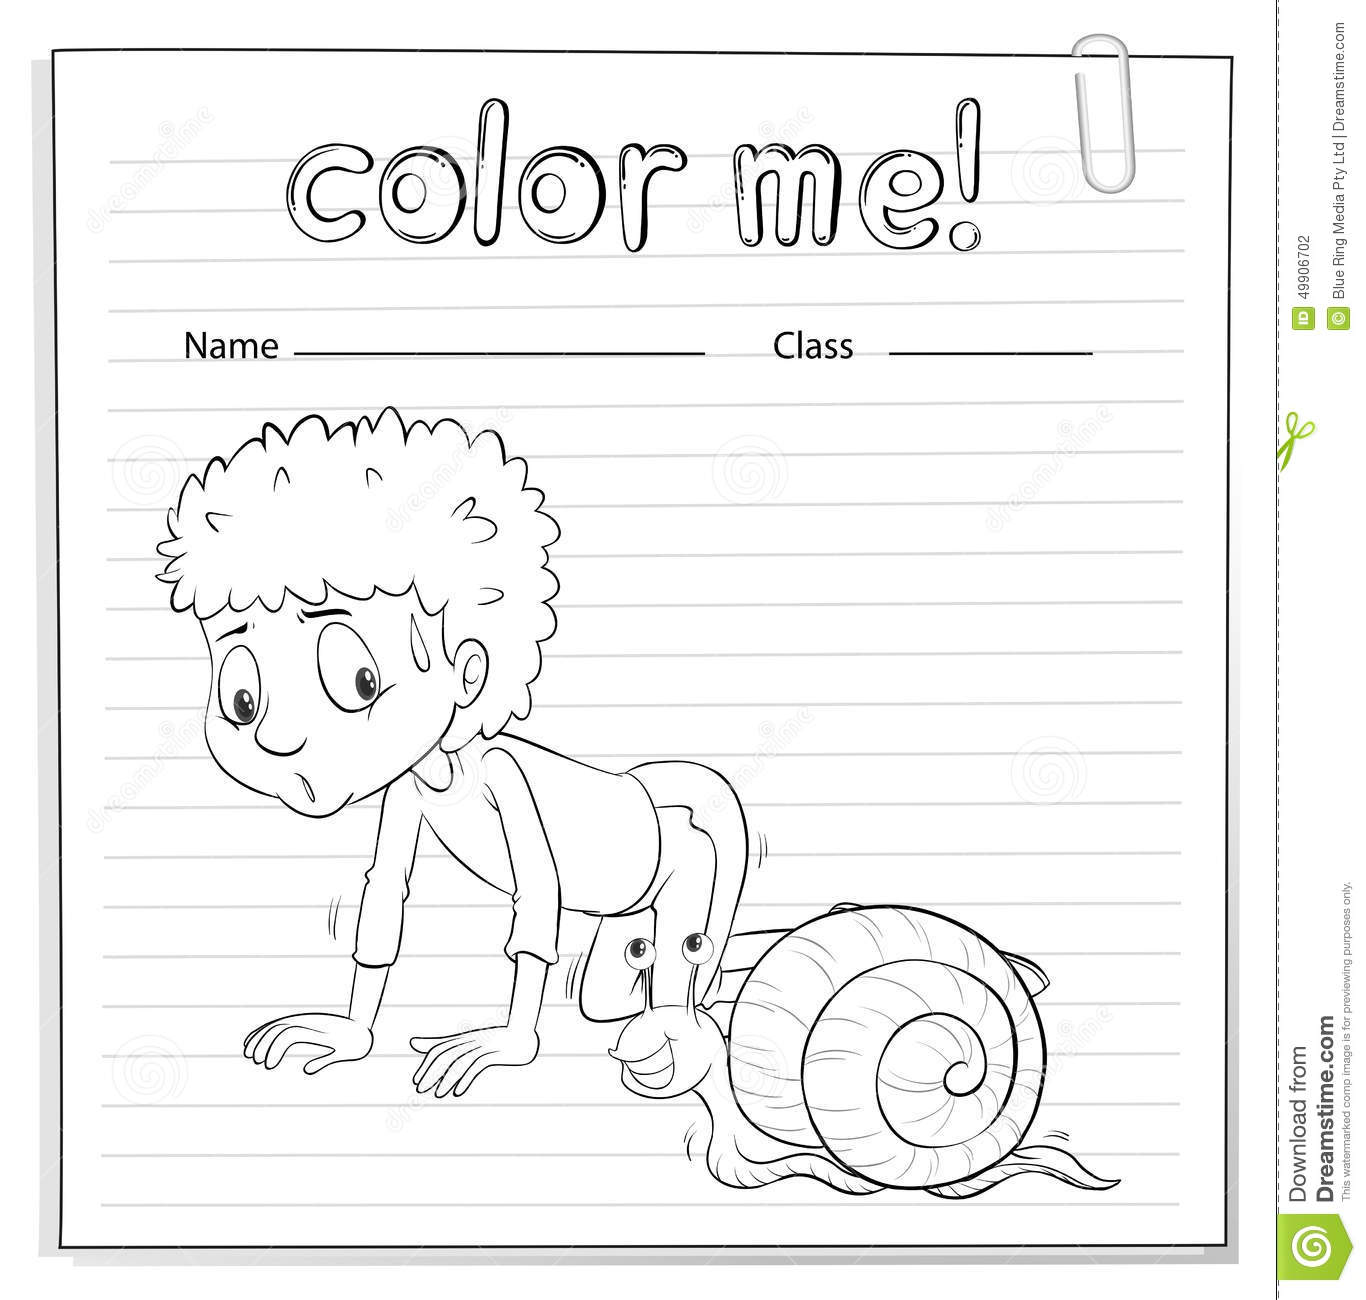 a color me worksheet with a kid and a snail stock vector image 49906702. Black Bedroom Furniture Sets. Home Design Ideas